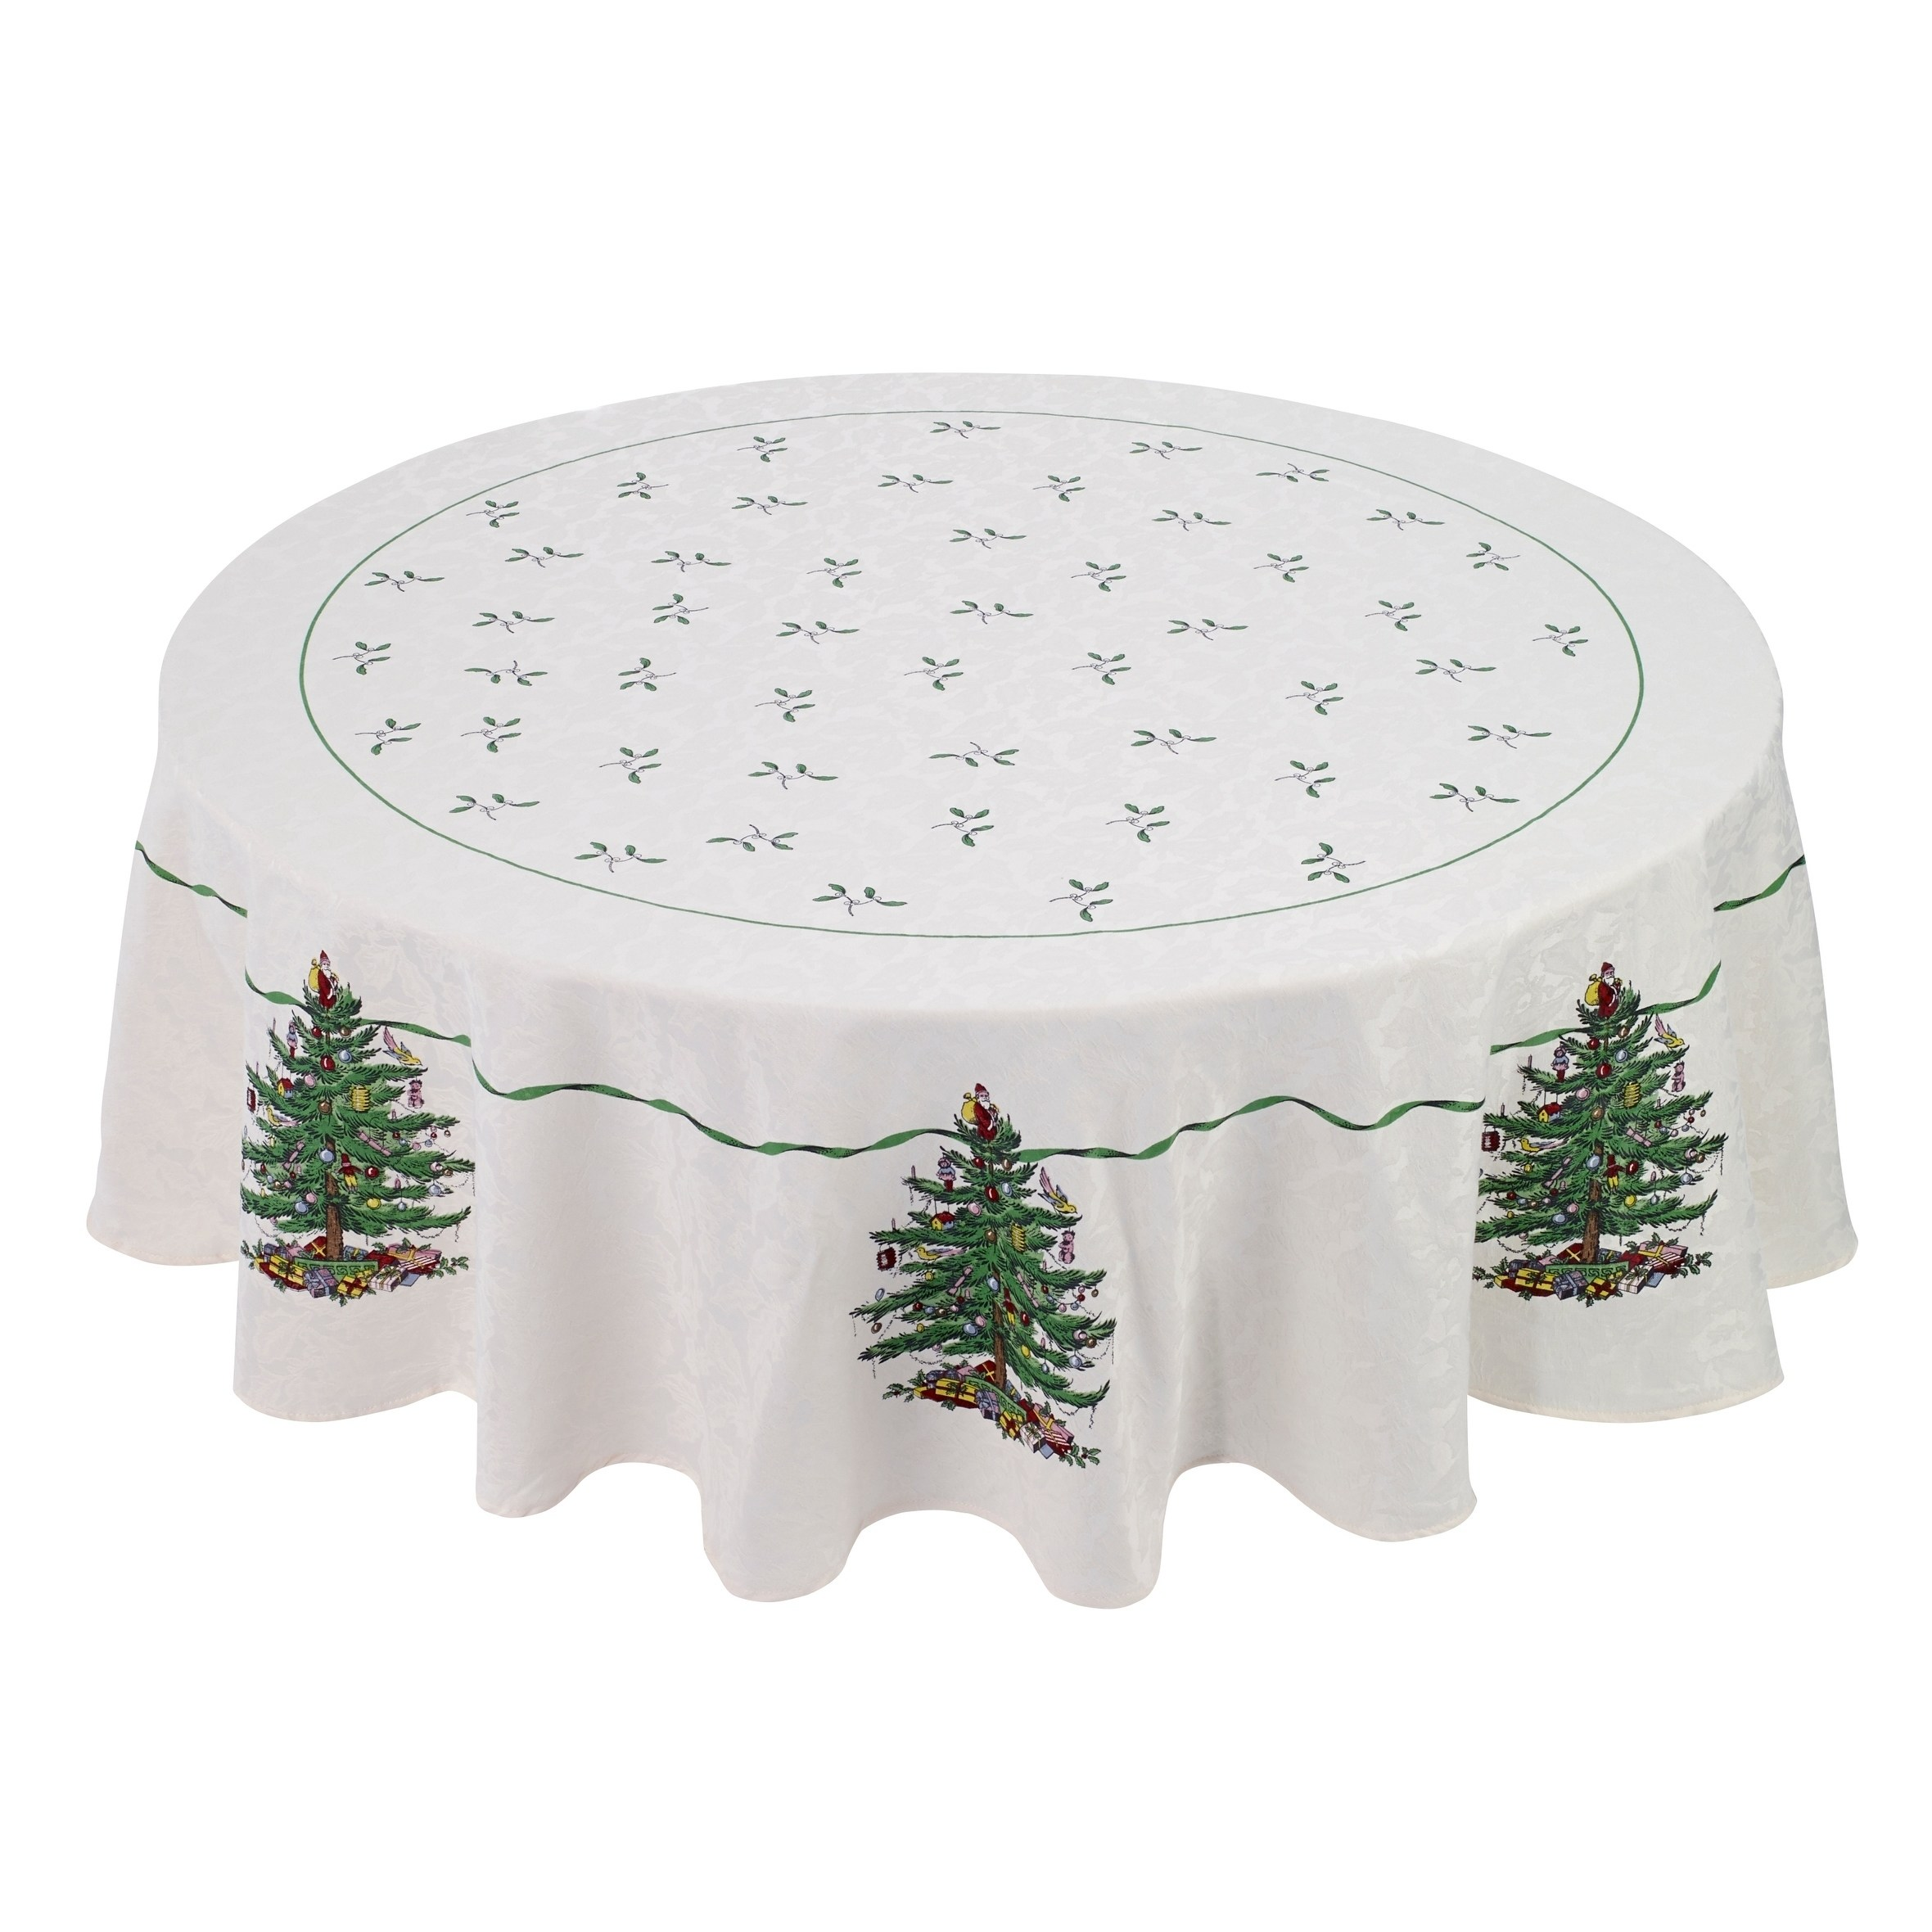 spode red tree round tablecloth free shipping accent today ikea living room furniture high back dining chairs farmhouse door outdoor set cover lawn hutch nautical themed lighting